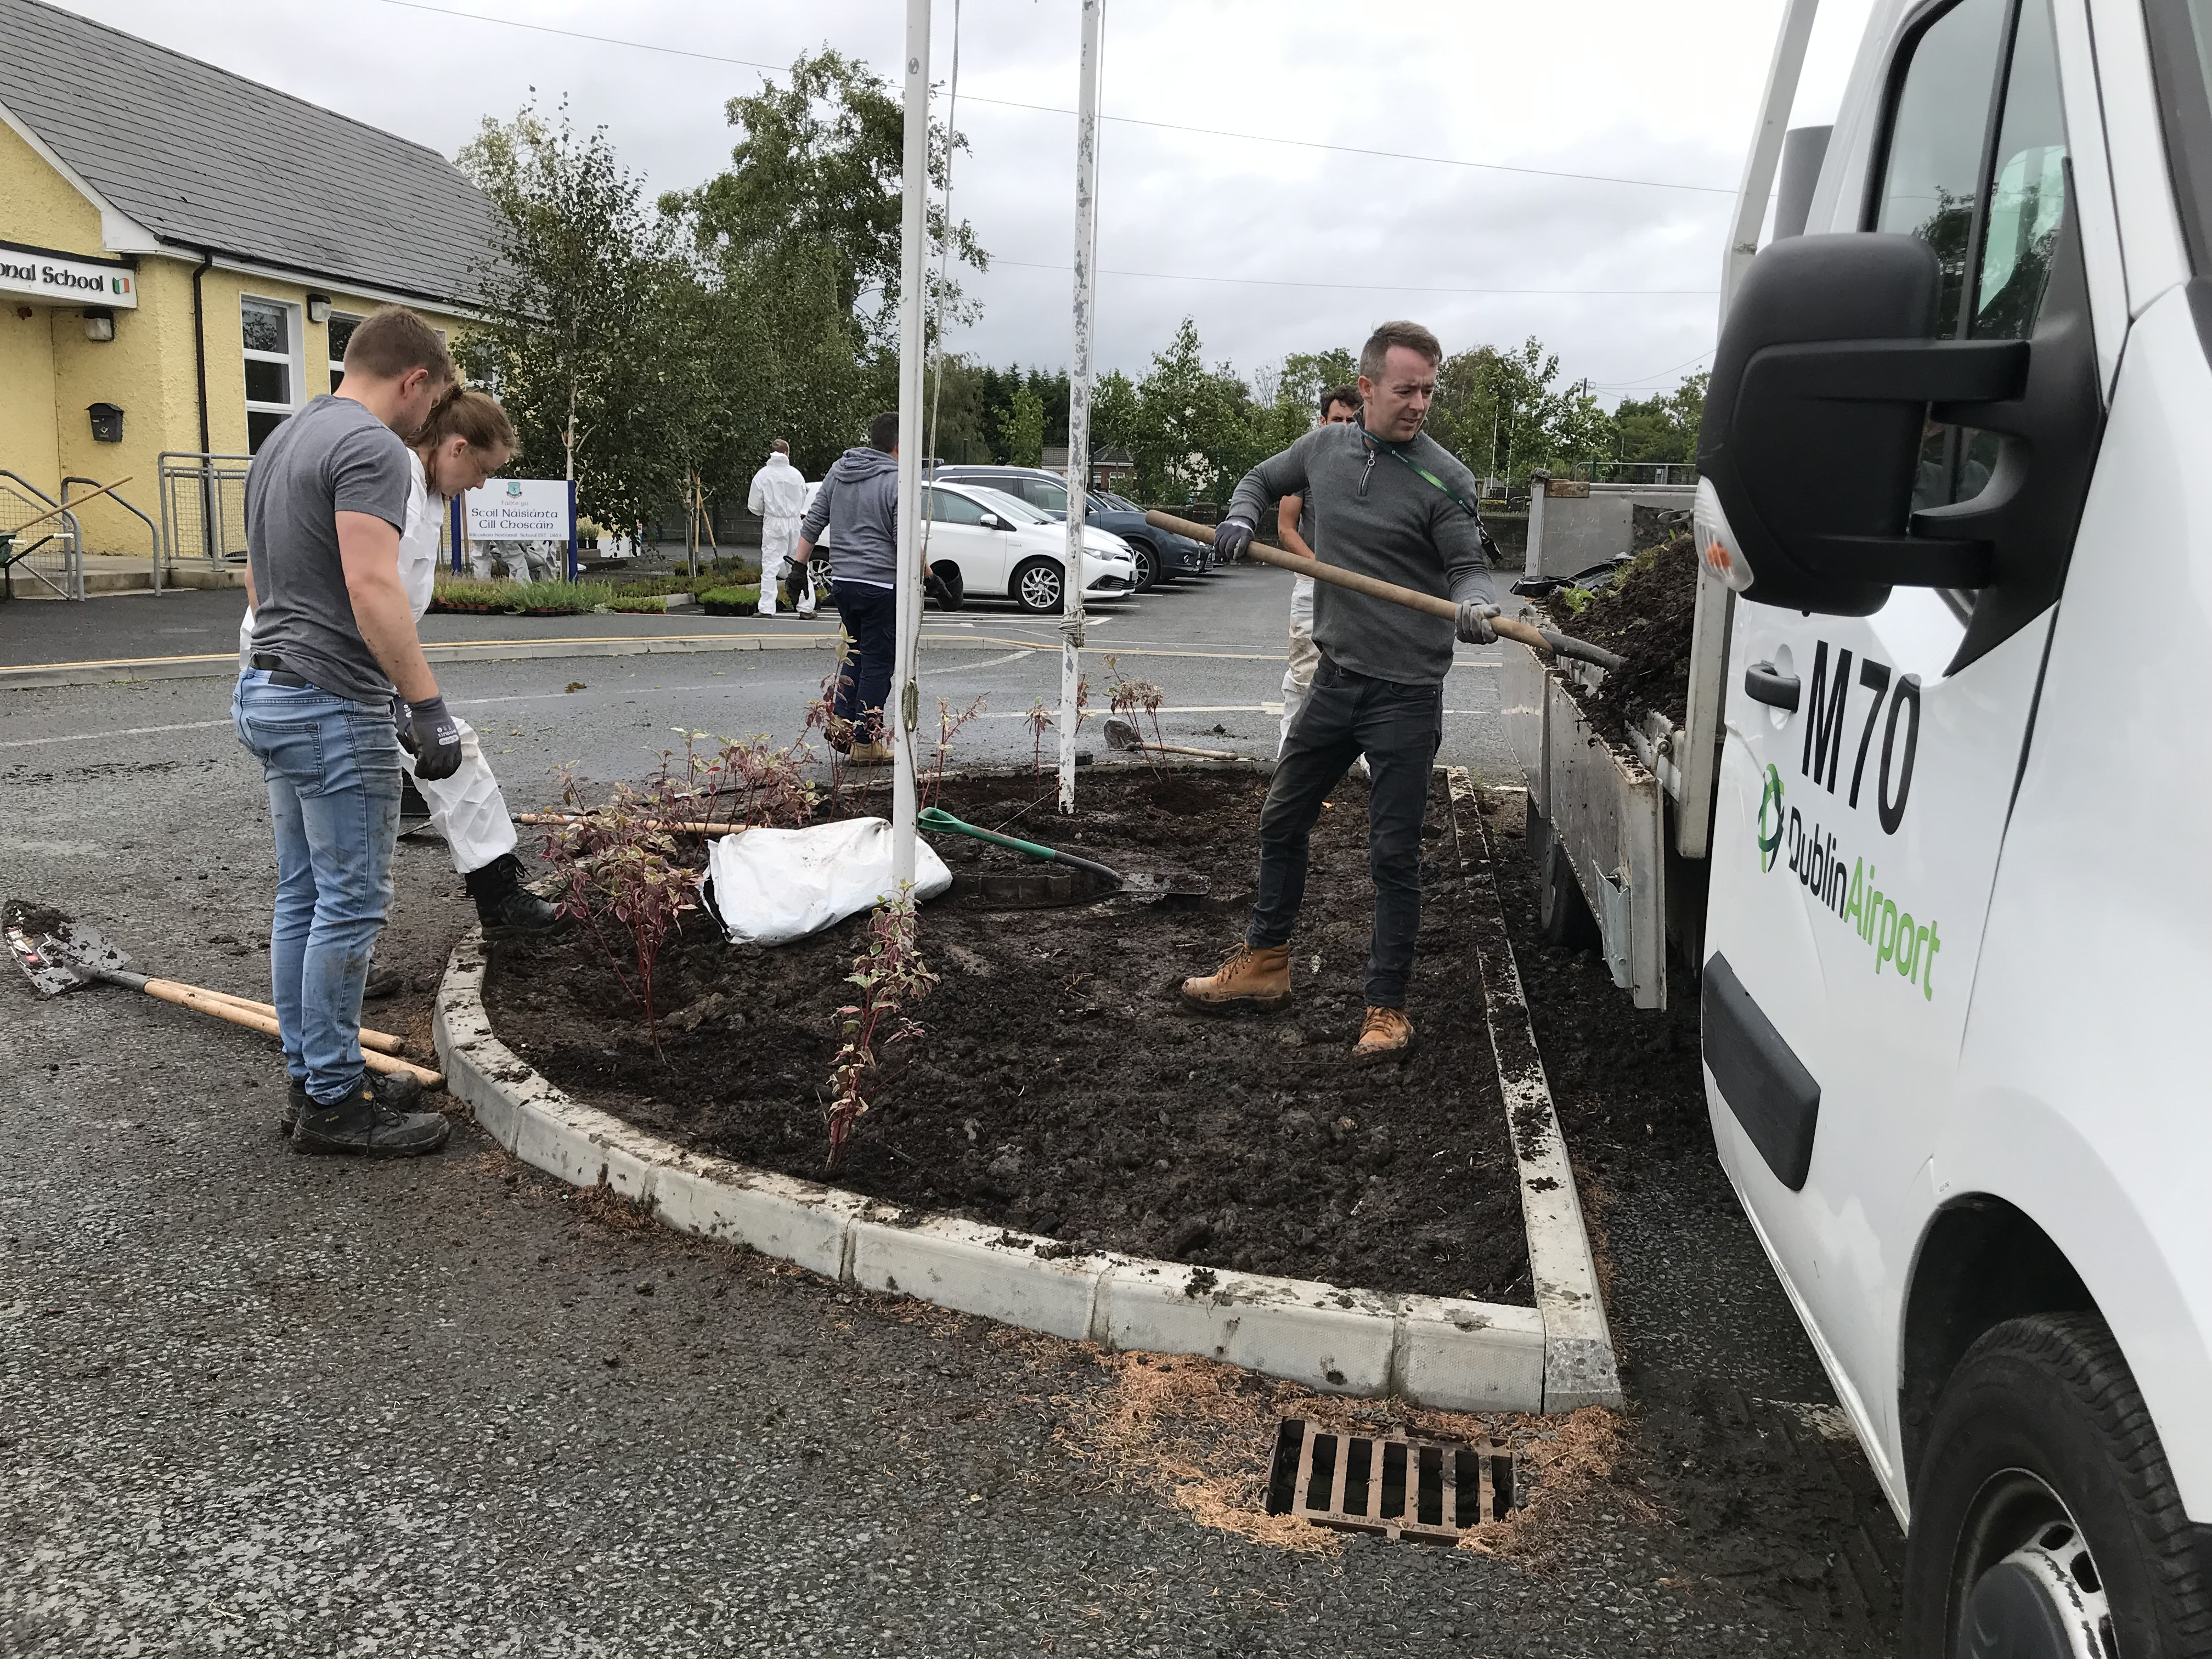 Dublin Airport's AMD carry out gardening works in a local school